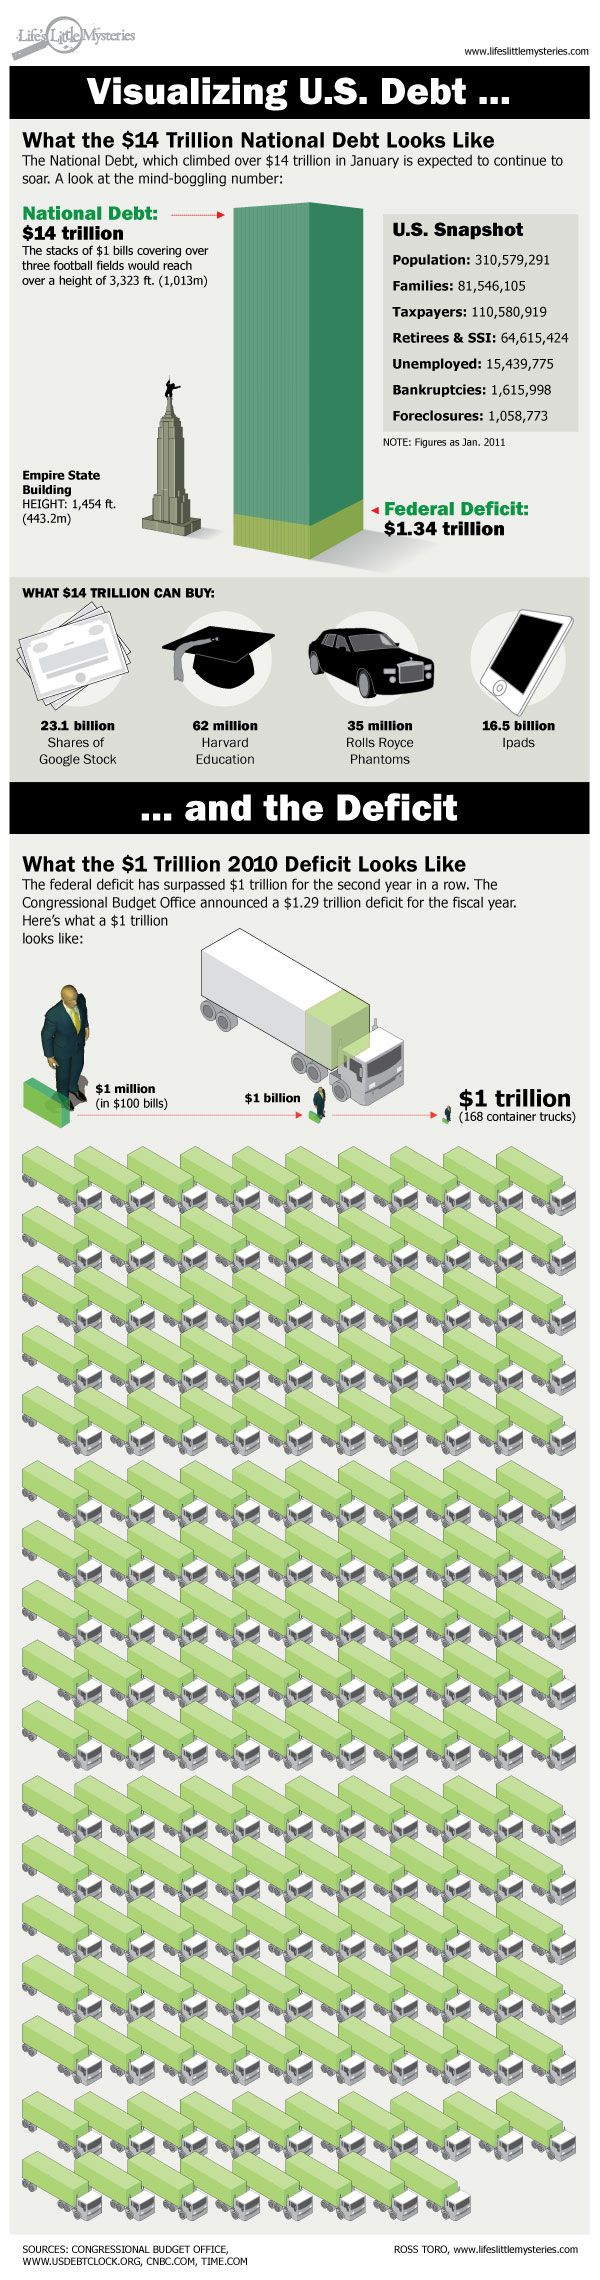 visualizing the national debt..